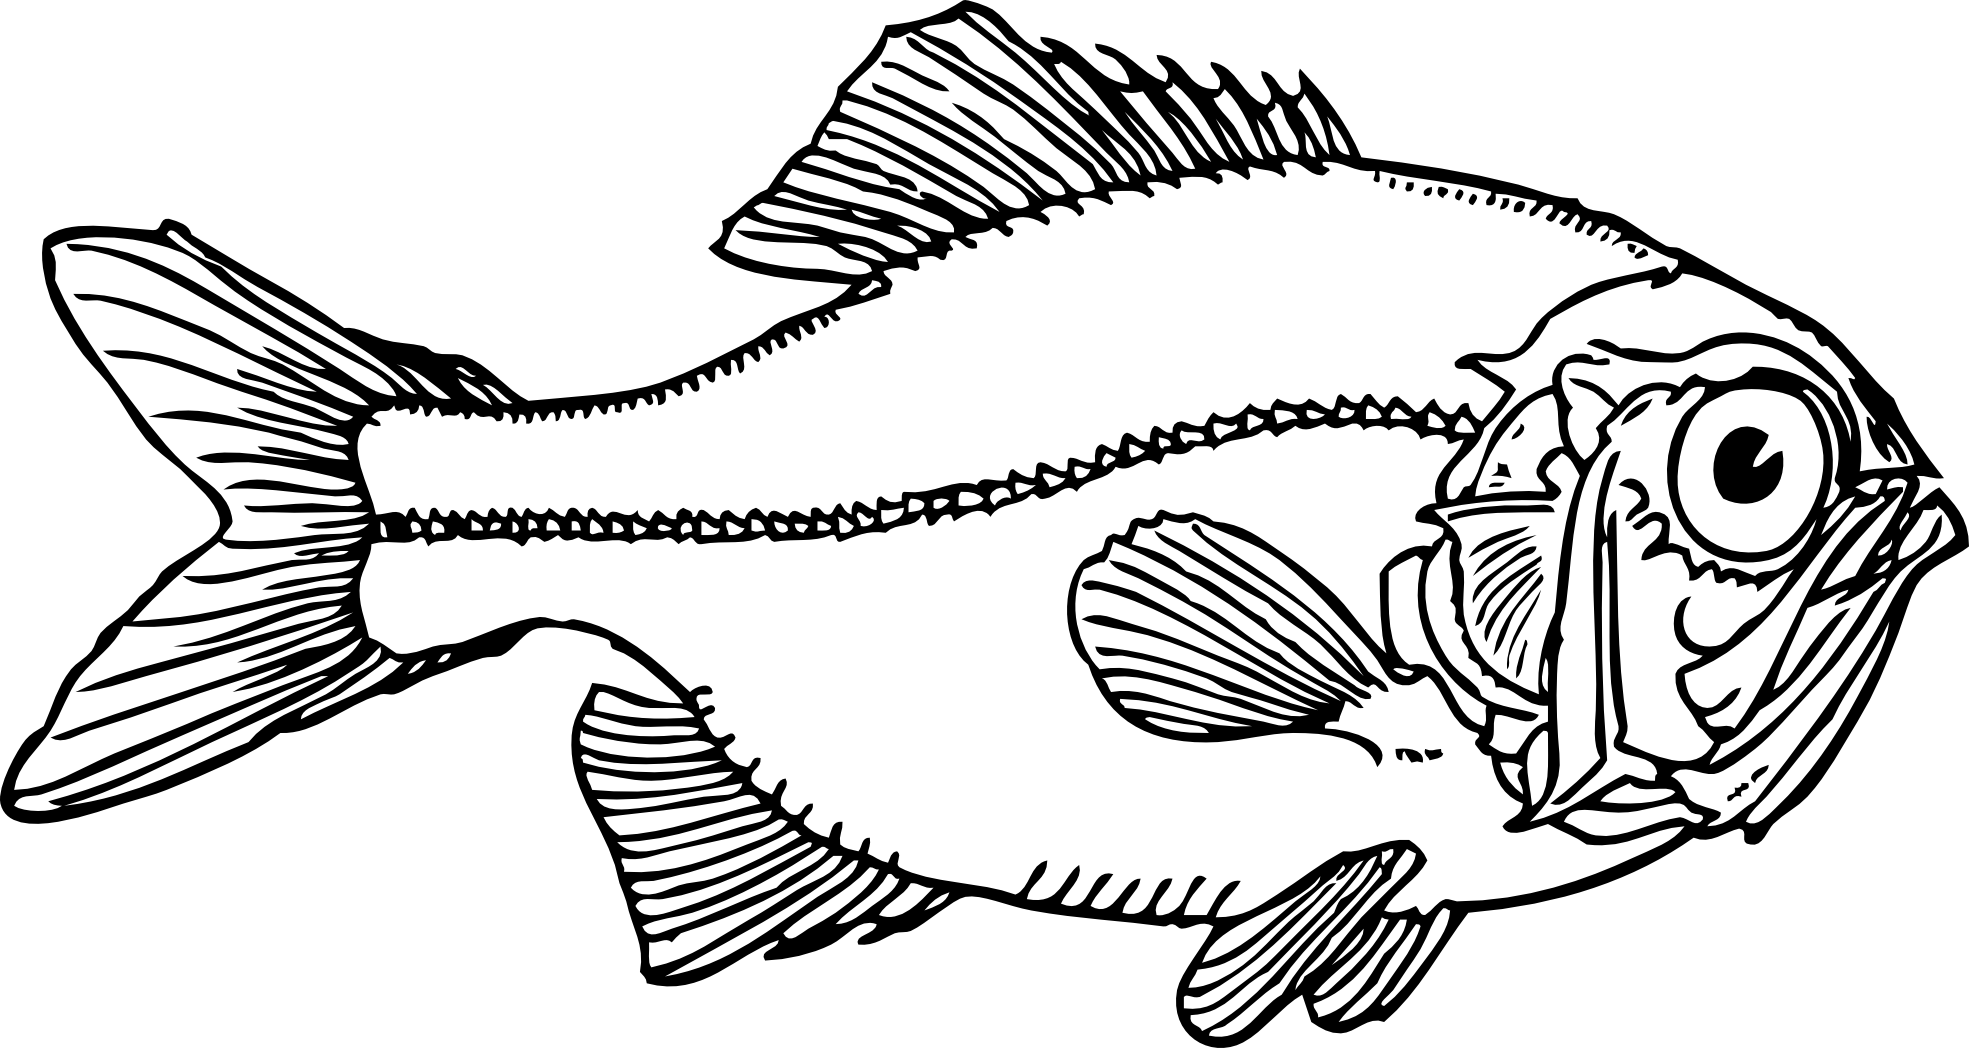 Fish fry tilapia clipart black and white.  collection of png